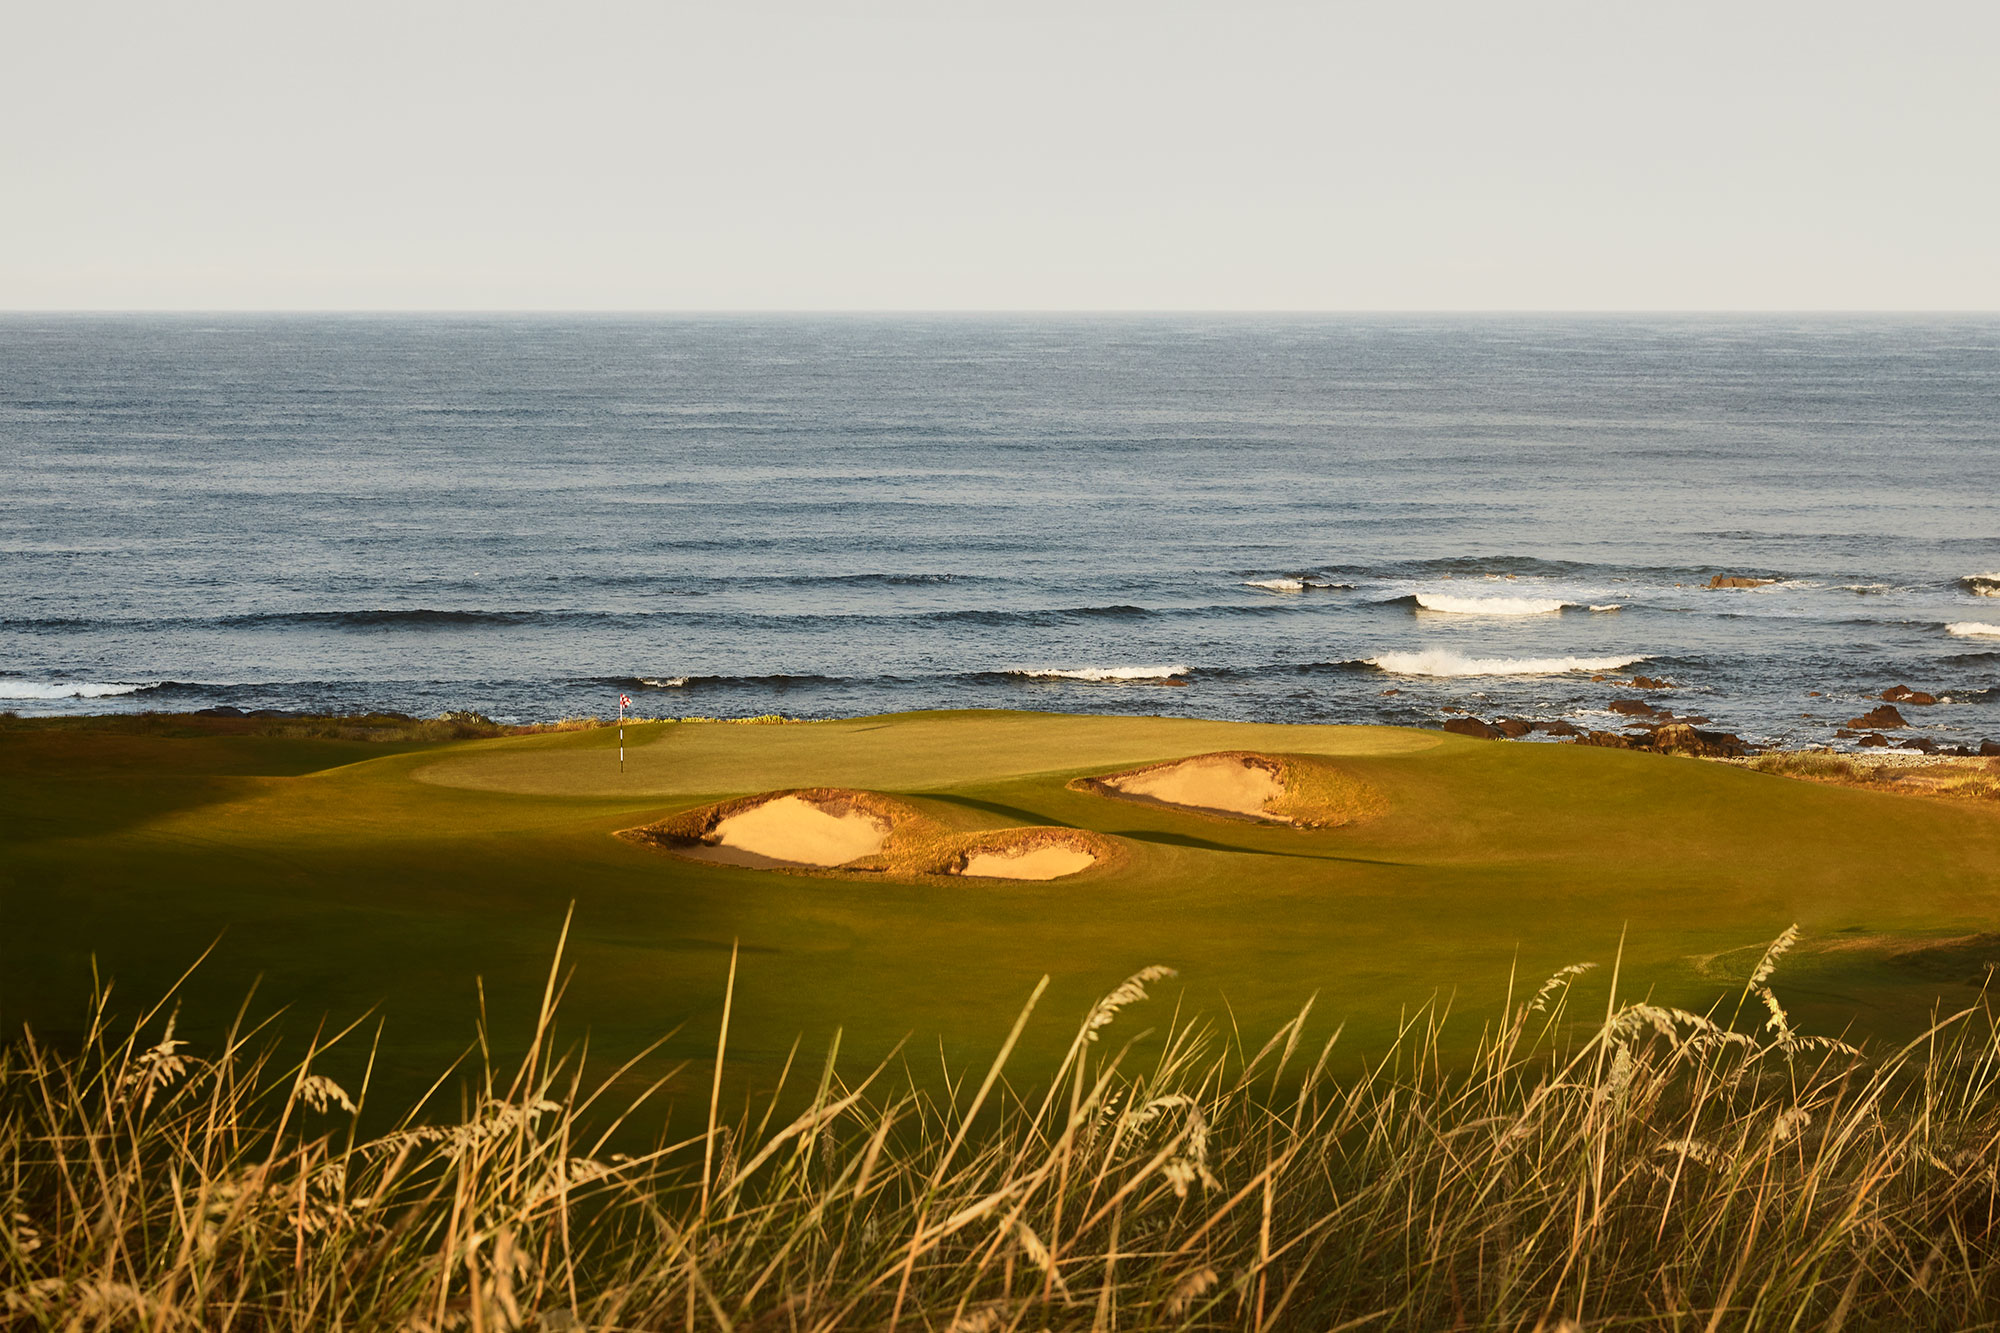 Ocean Dunes Golf Course - Stephen Denton Photography, Los Angeles, California based interior & hospitality photographer